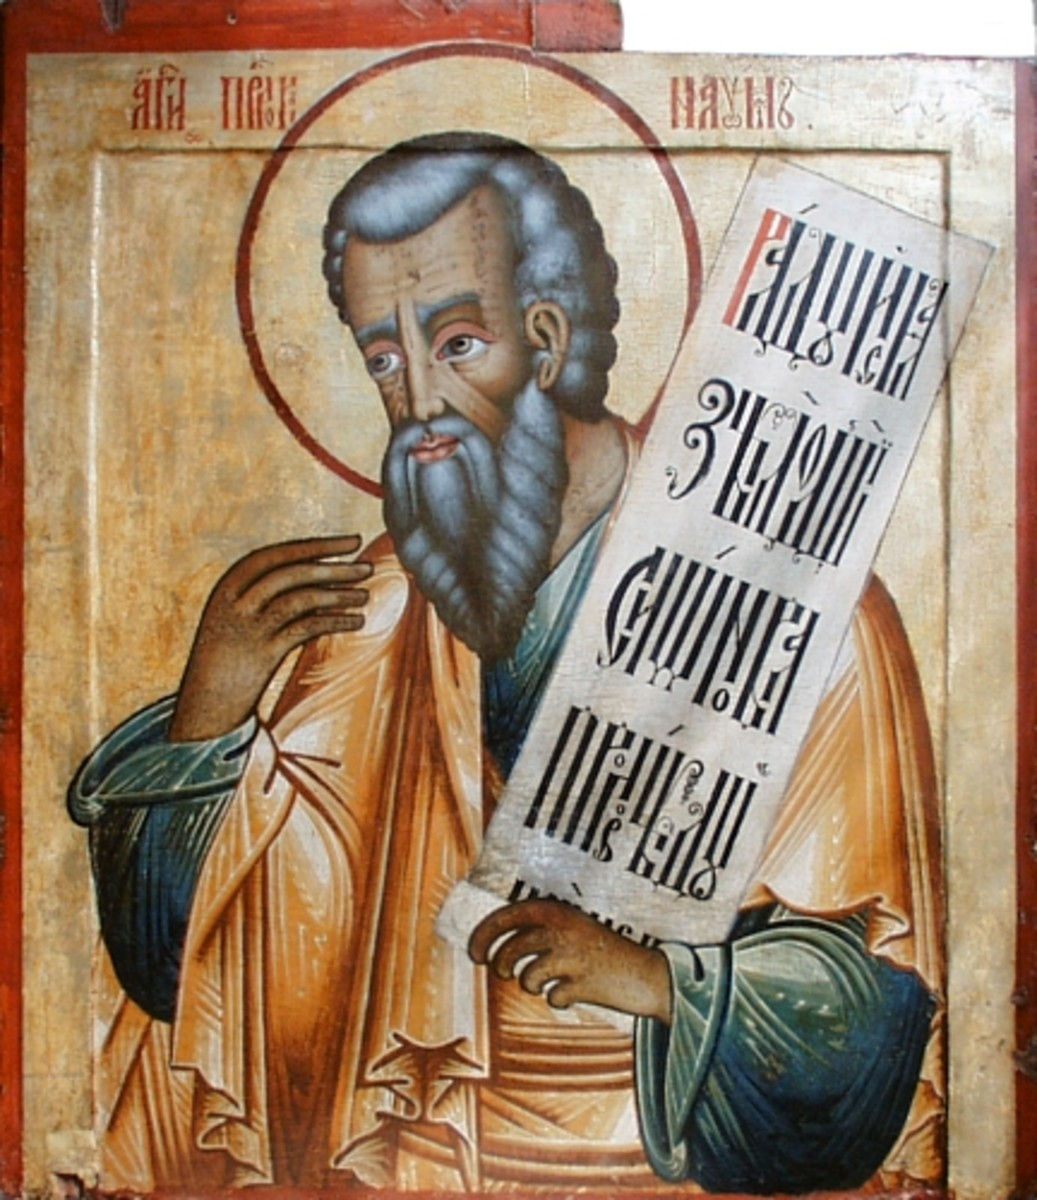 This is an 18th century Russian Orthodox Icon of the Prophet Nahum, the author of the Book of Nahum in the Bible.